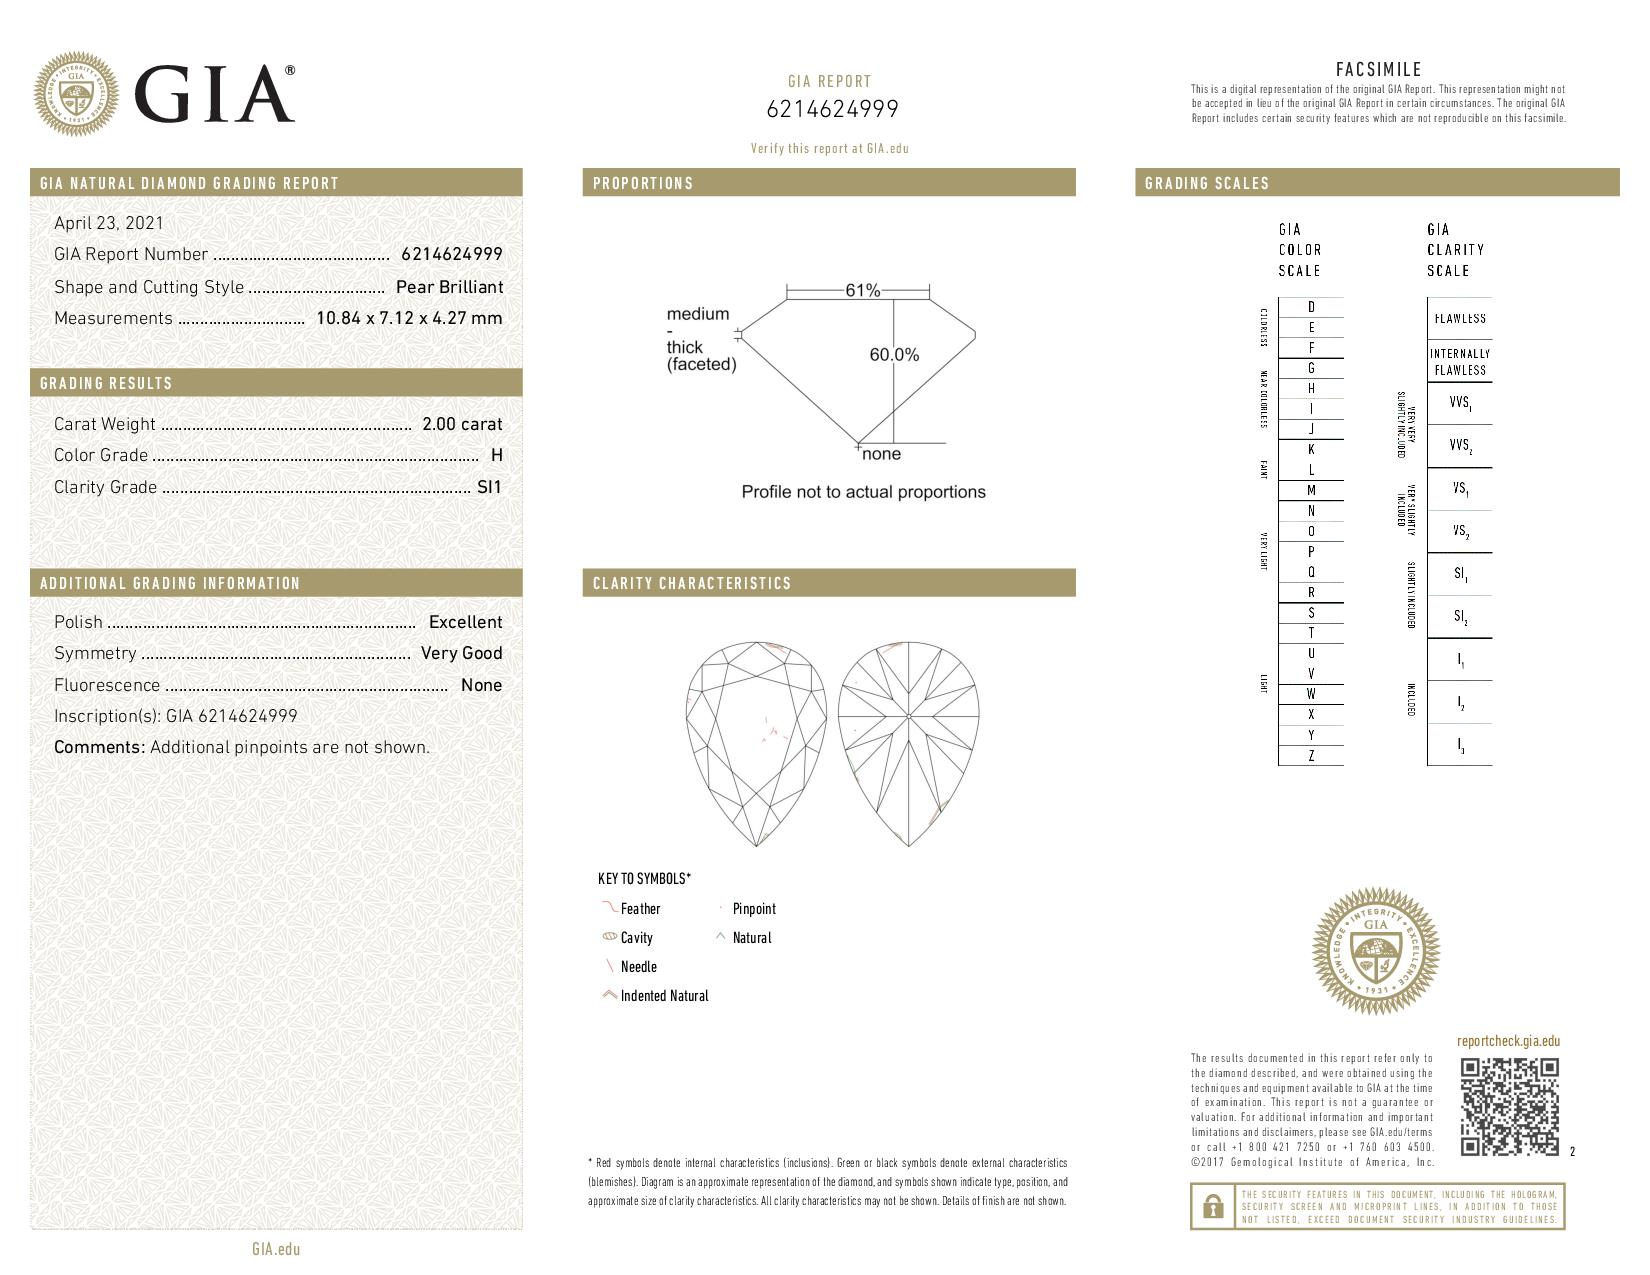 This is a 2.00 carat pear shape, H color, SI1 clarity natural diamond accompanied by a GIA grading report.